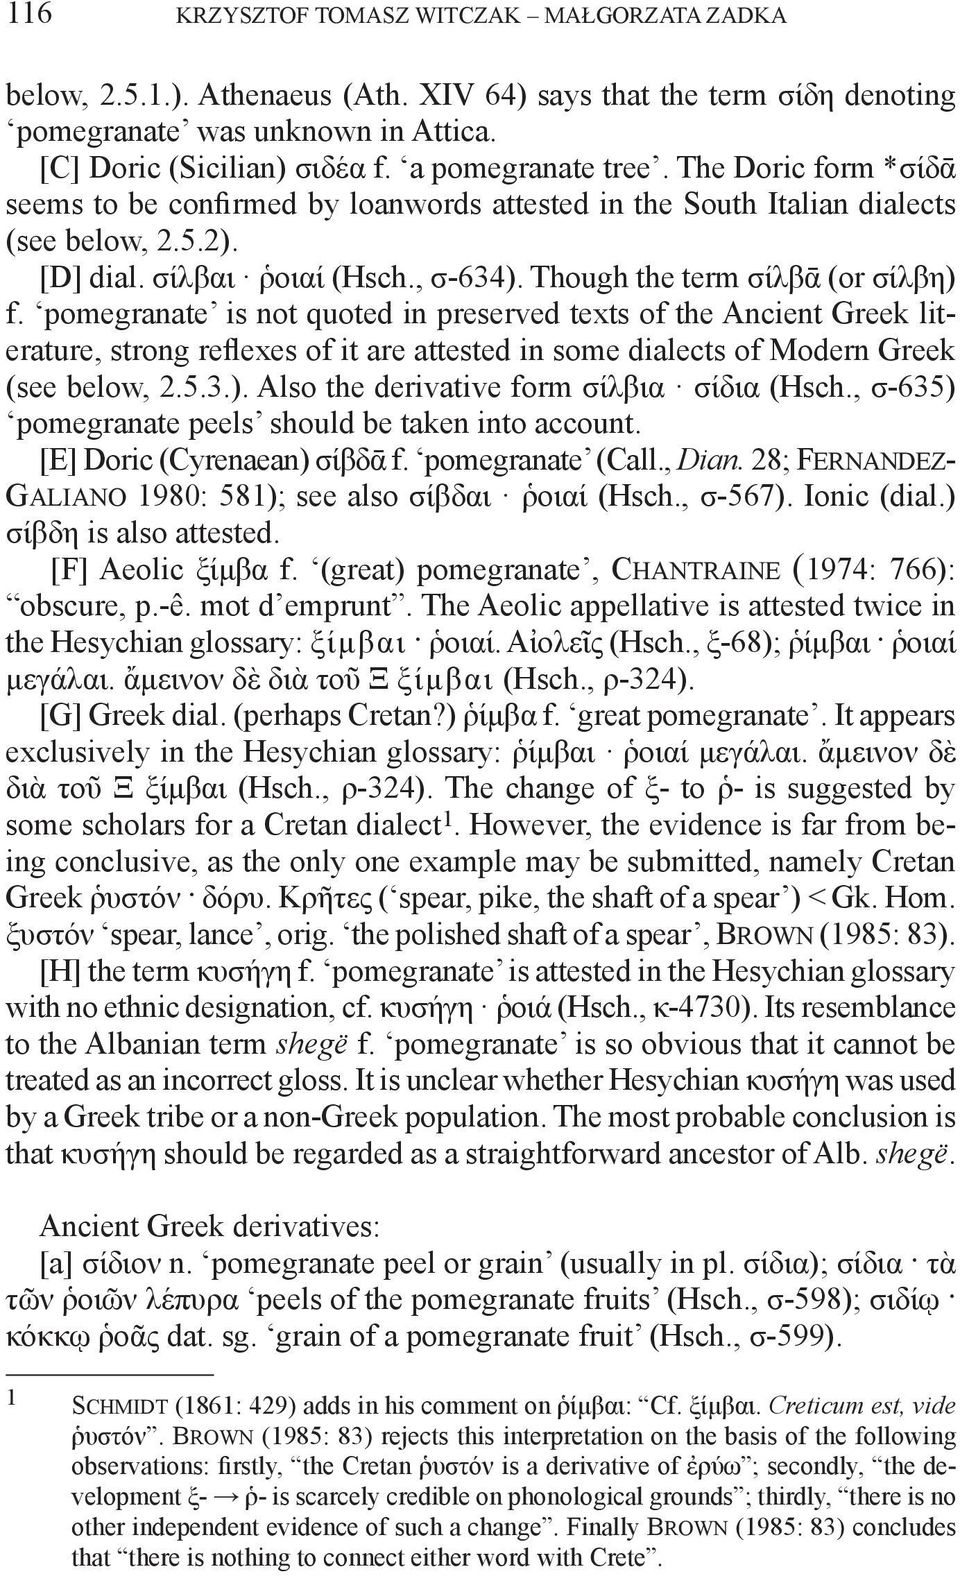 Though the term σίλβᾱ (or σίλβη) f. pomegranate is not quoted in preserved texts of the Ancient Greek literature, strong reflexes of it are attested in some dialects of Modern Greek (see below, 2.5.3.